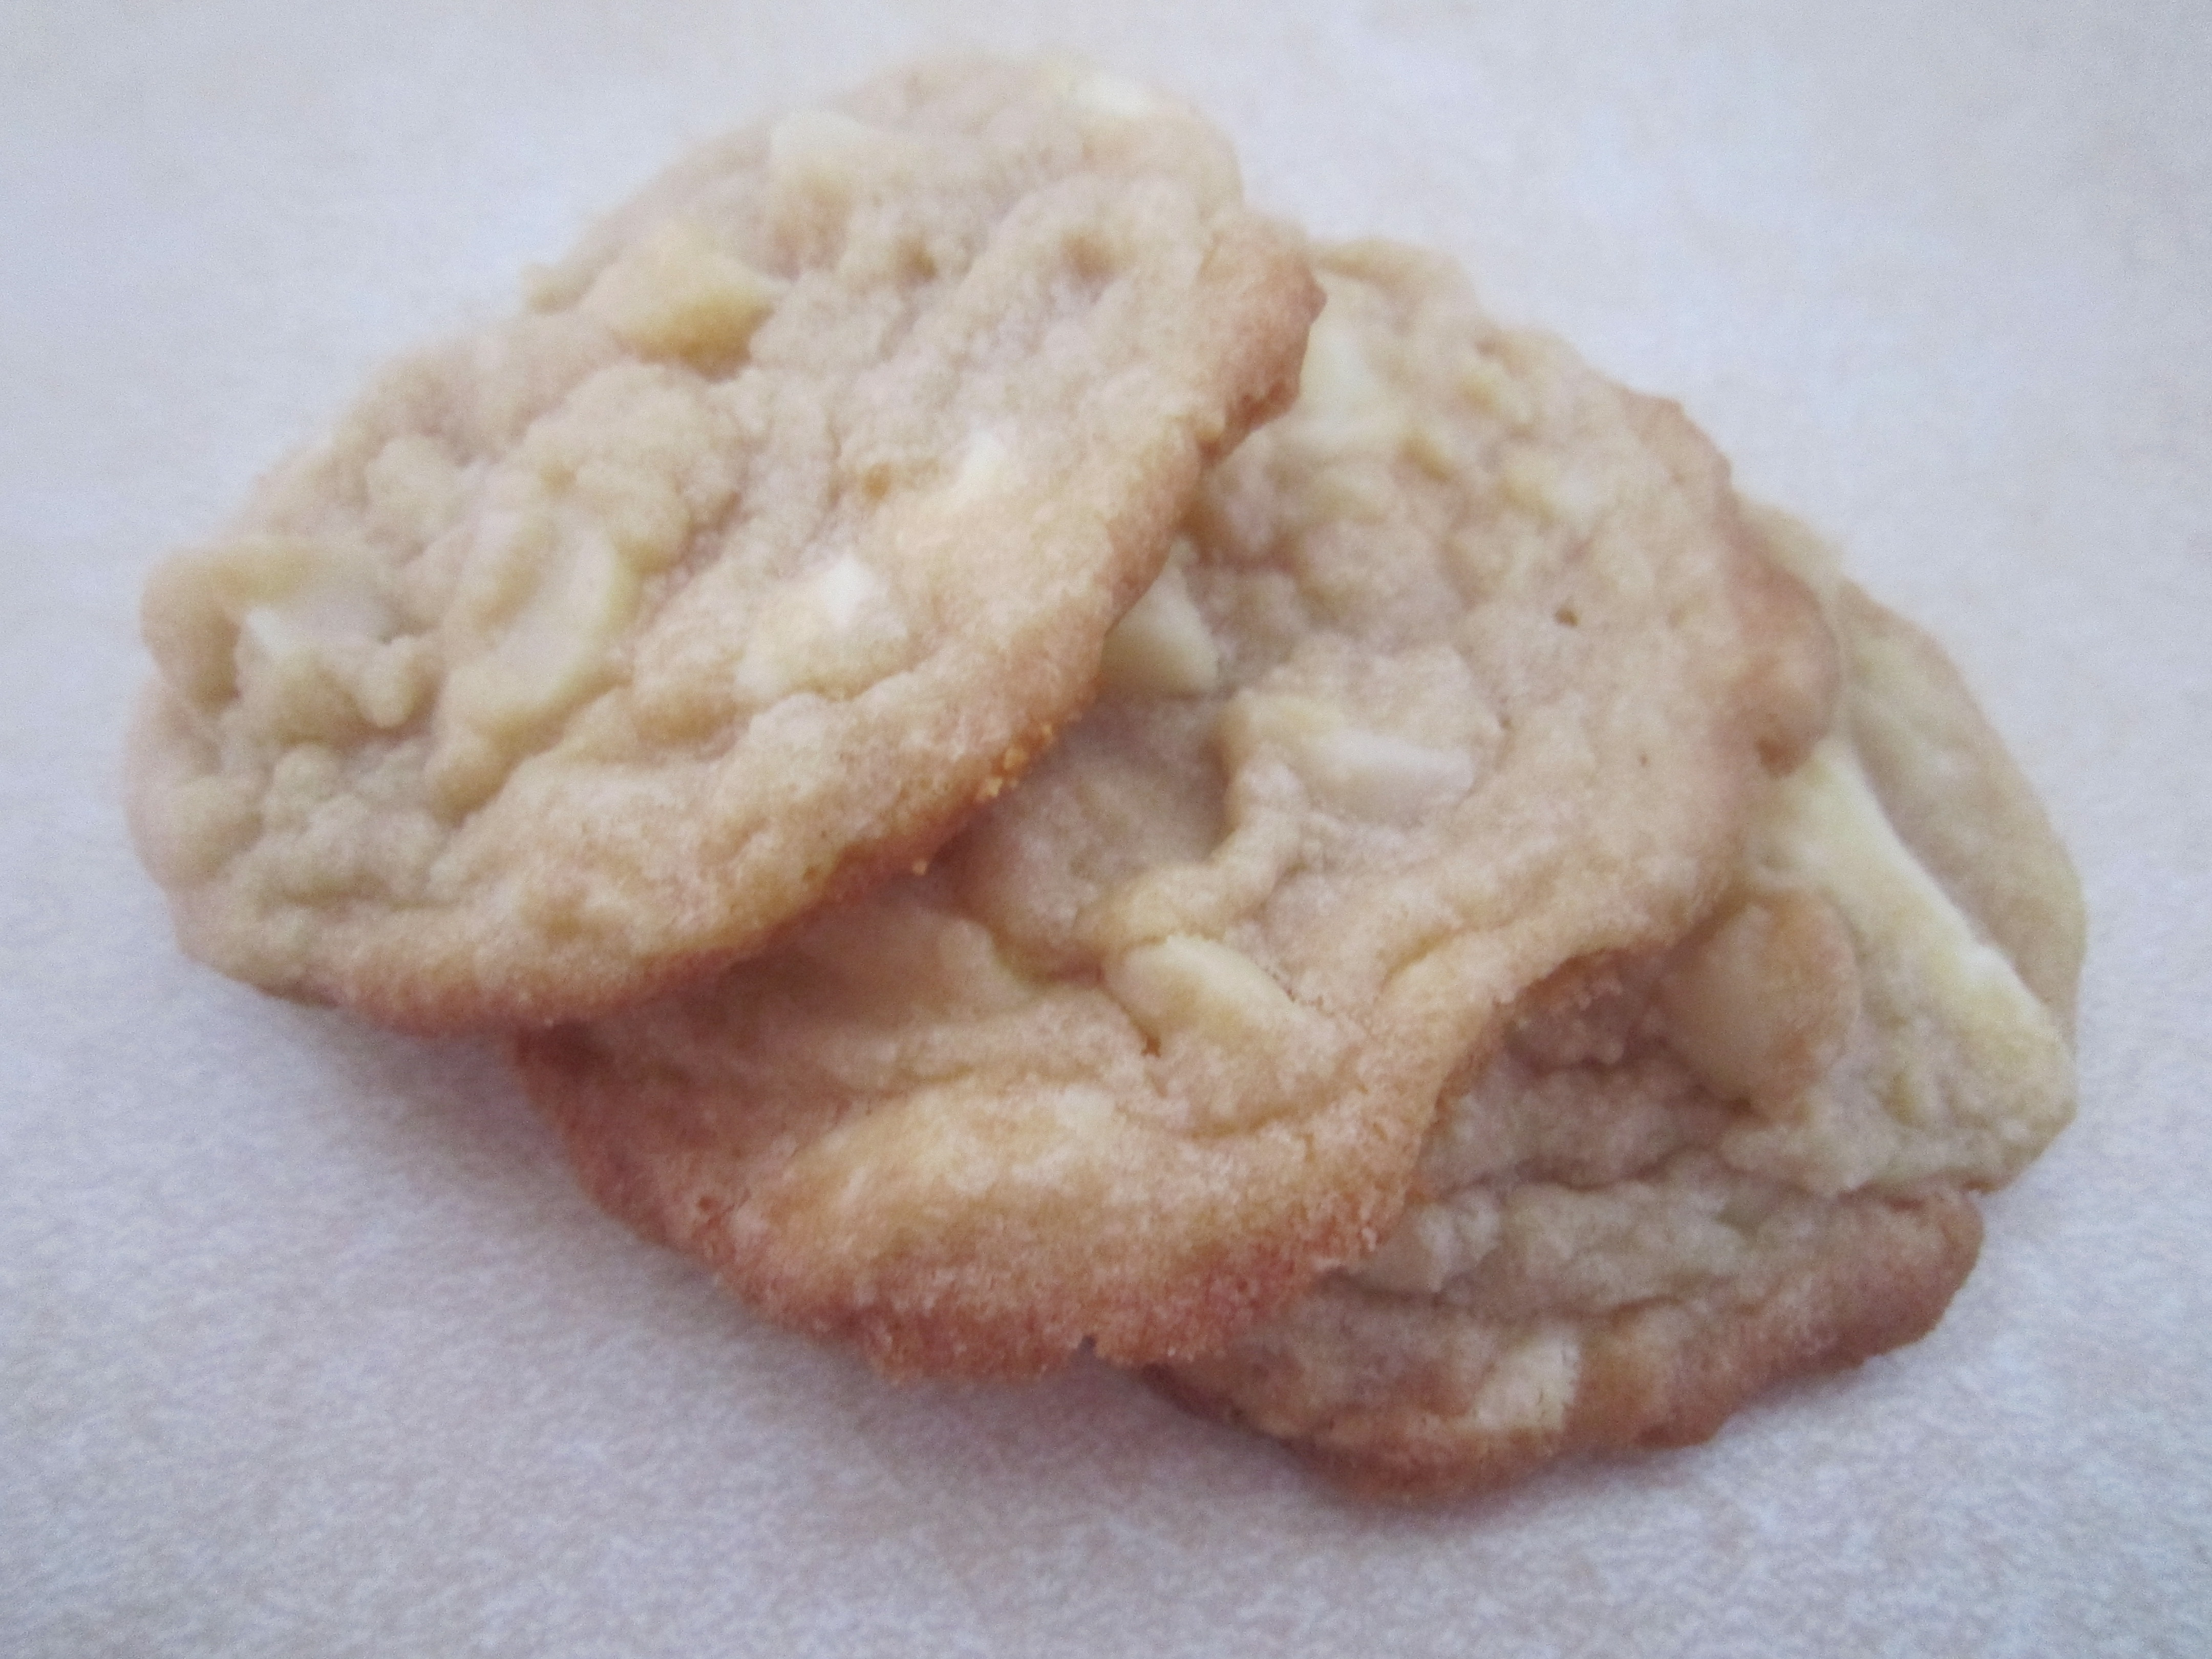 White Chocolate Macadamia Nut Cookies - Warm Vanilla Sugar